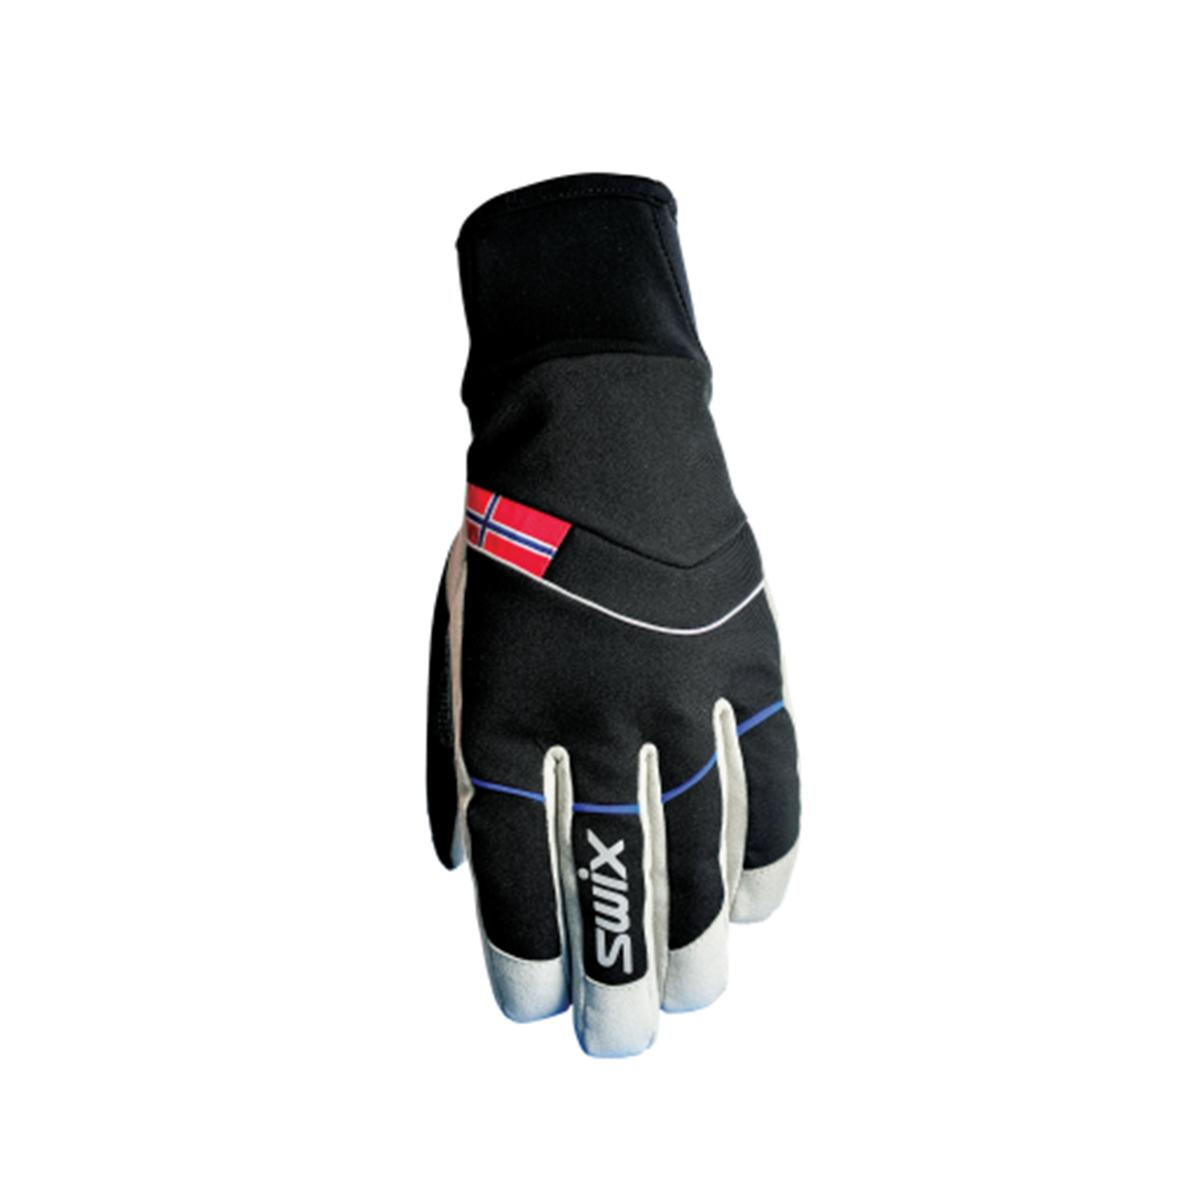 Swix Men's Lahti Glove in Black